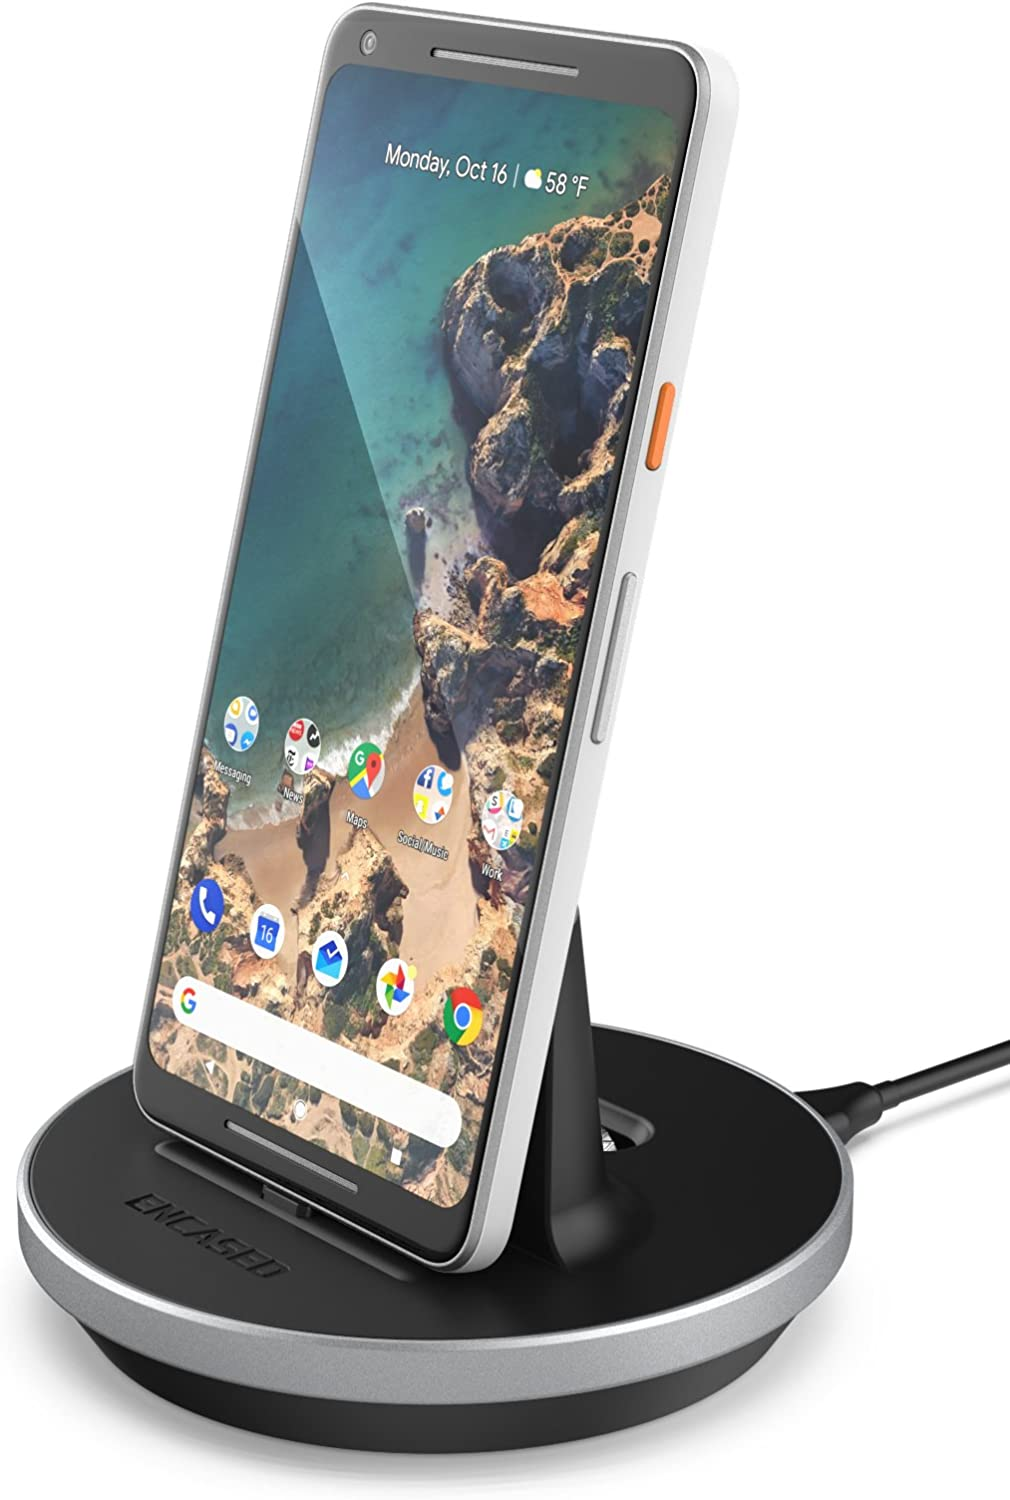 Google Pixel 2 XL Desktop Charging Dock - Encased USB C Charger Stand - Fast Charge Compatible (Aluminum/Black)